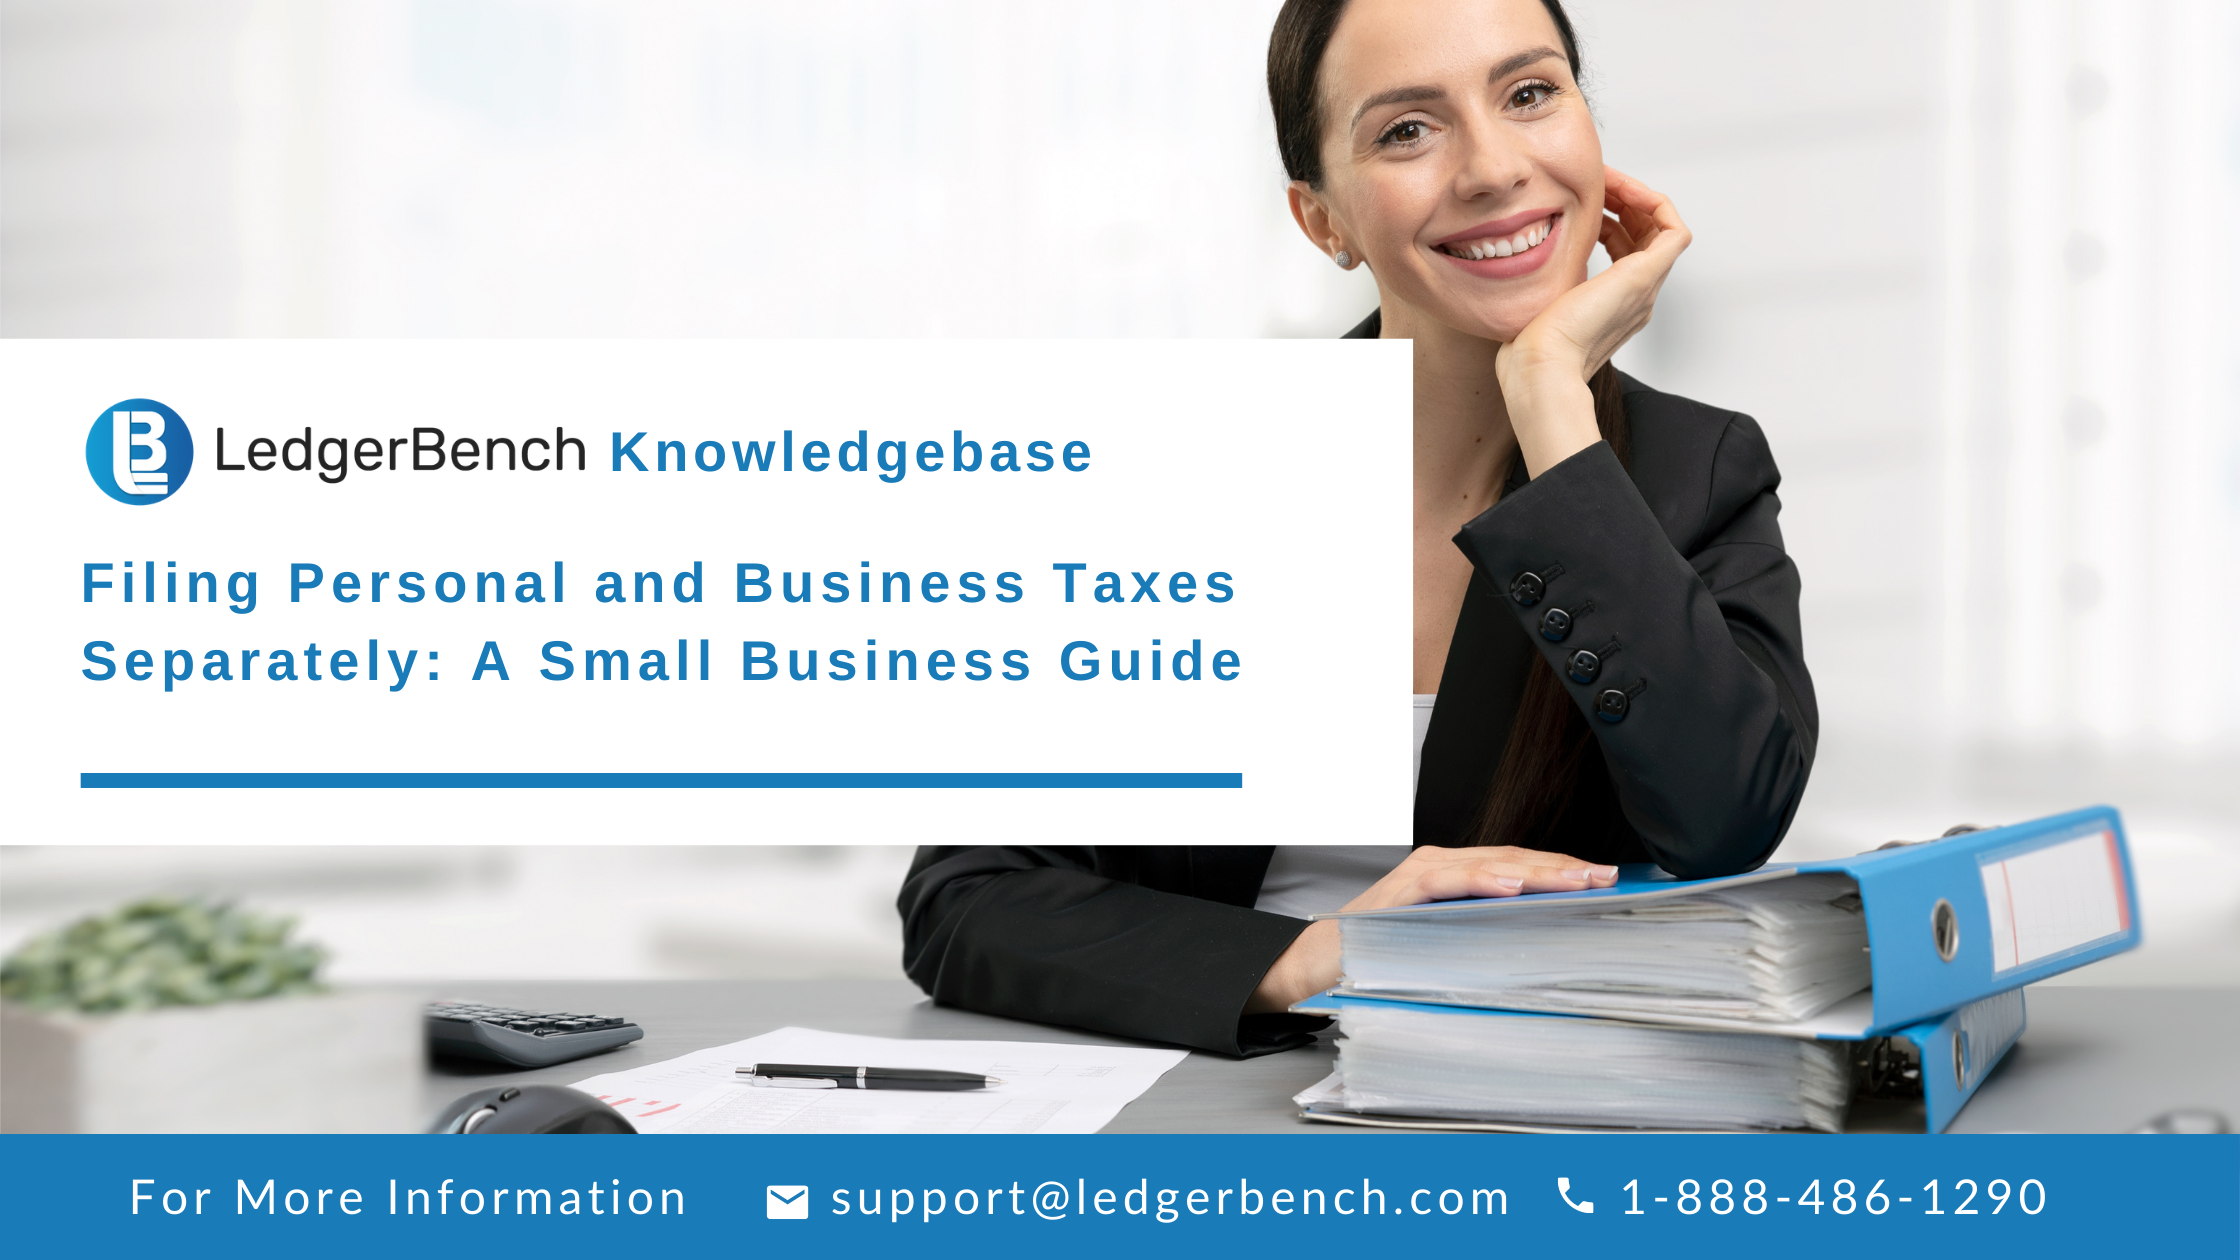 Filing Personal and Business Taxes Separately: A Small Business Guide